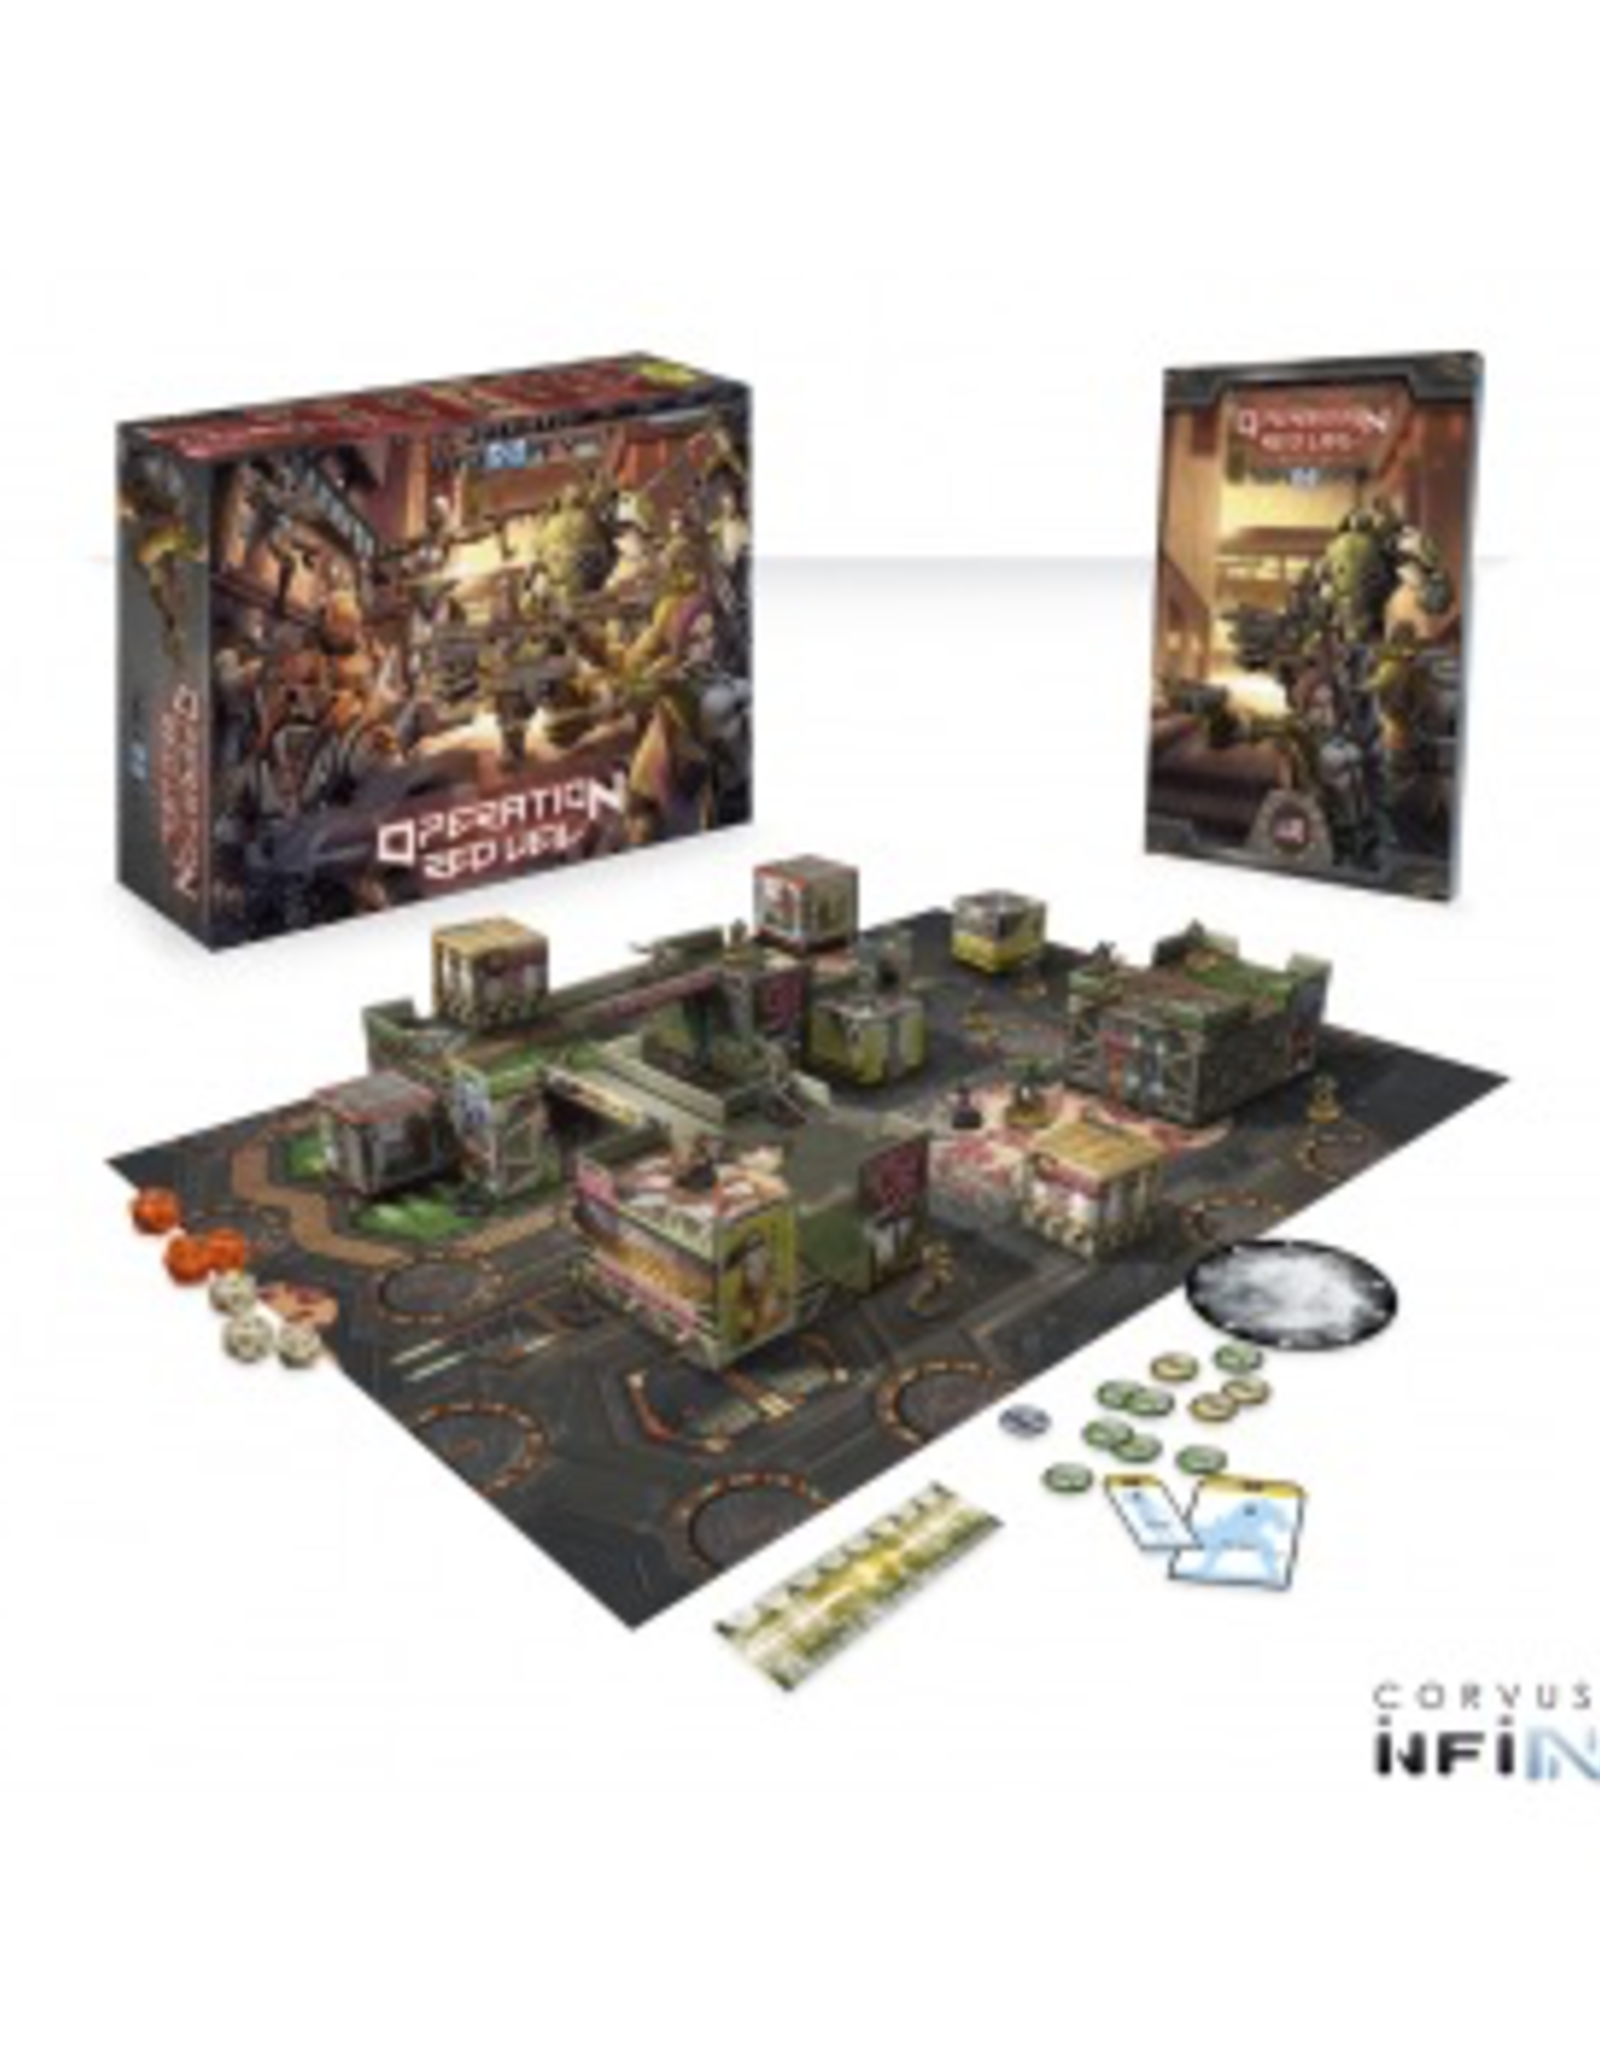 CB - Infinity Infinity: Operation: Red Veil (2 players introductory Battle Pack) - EN